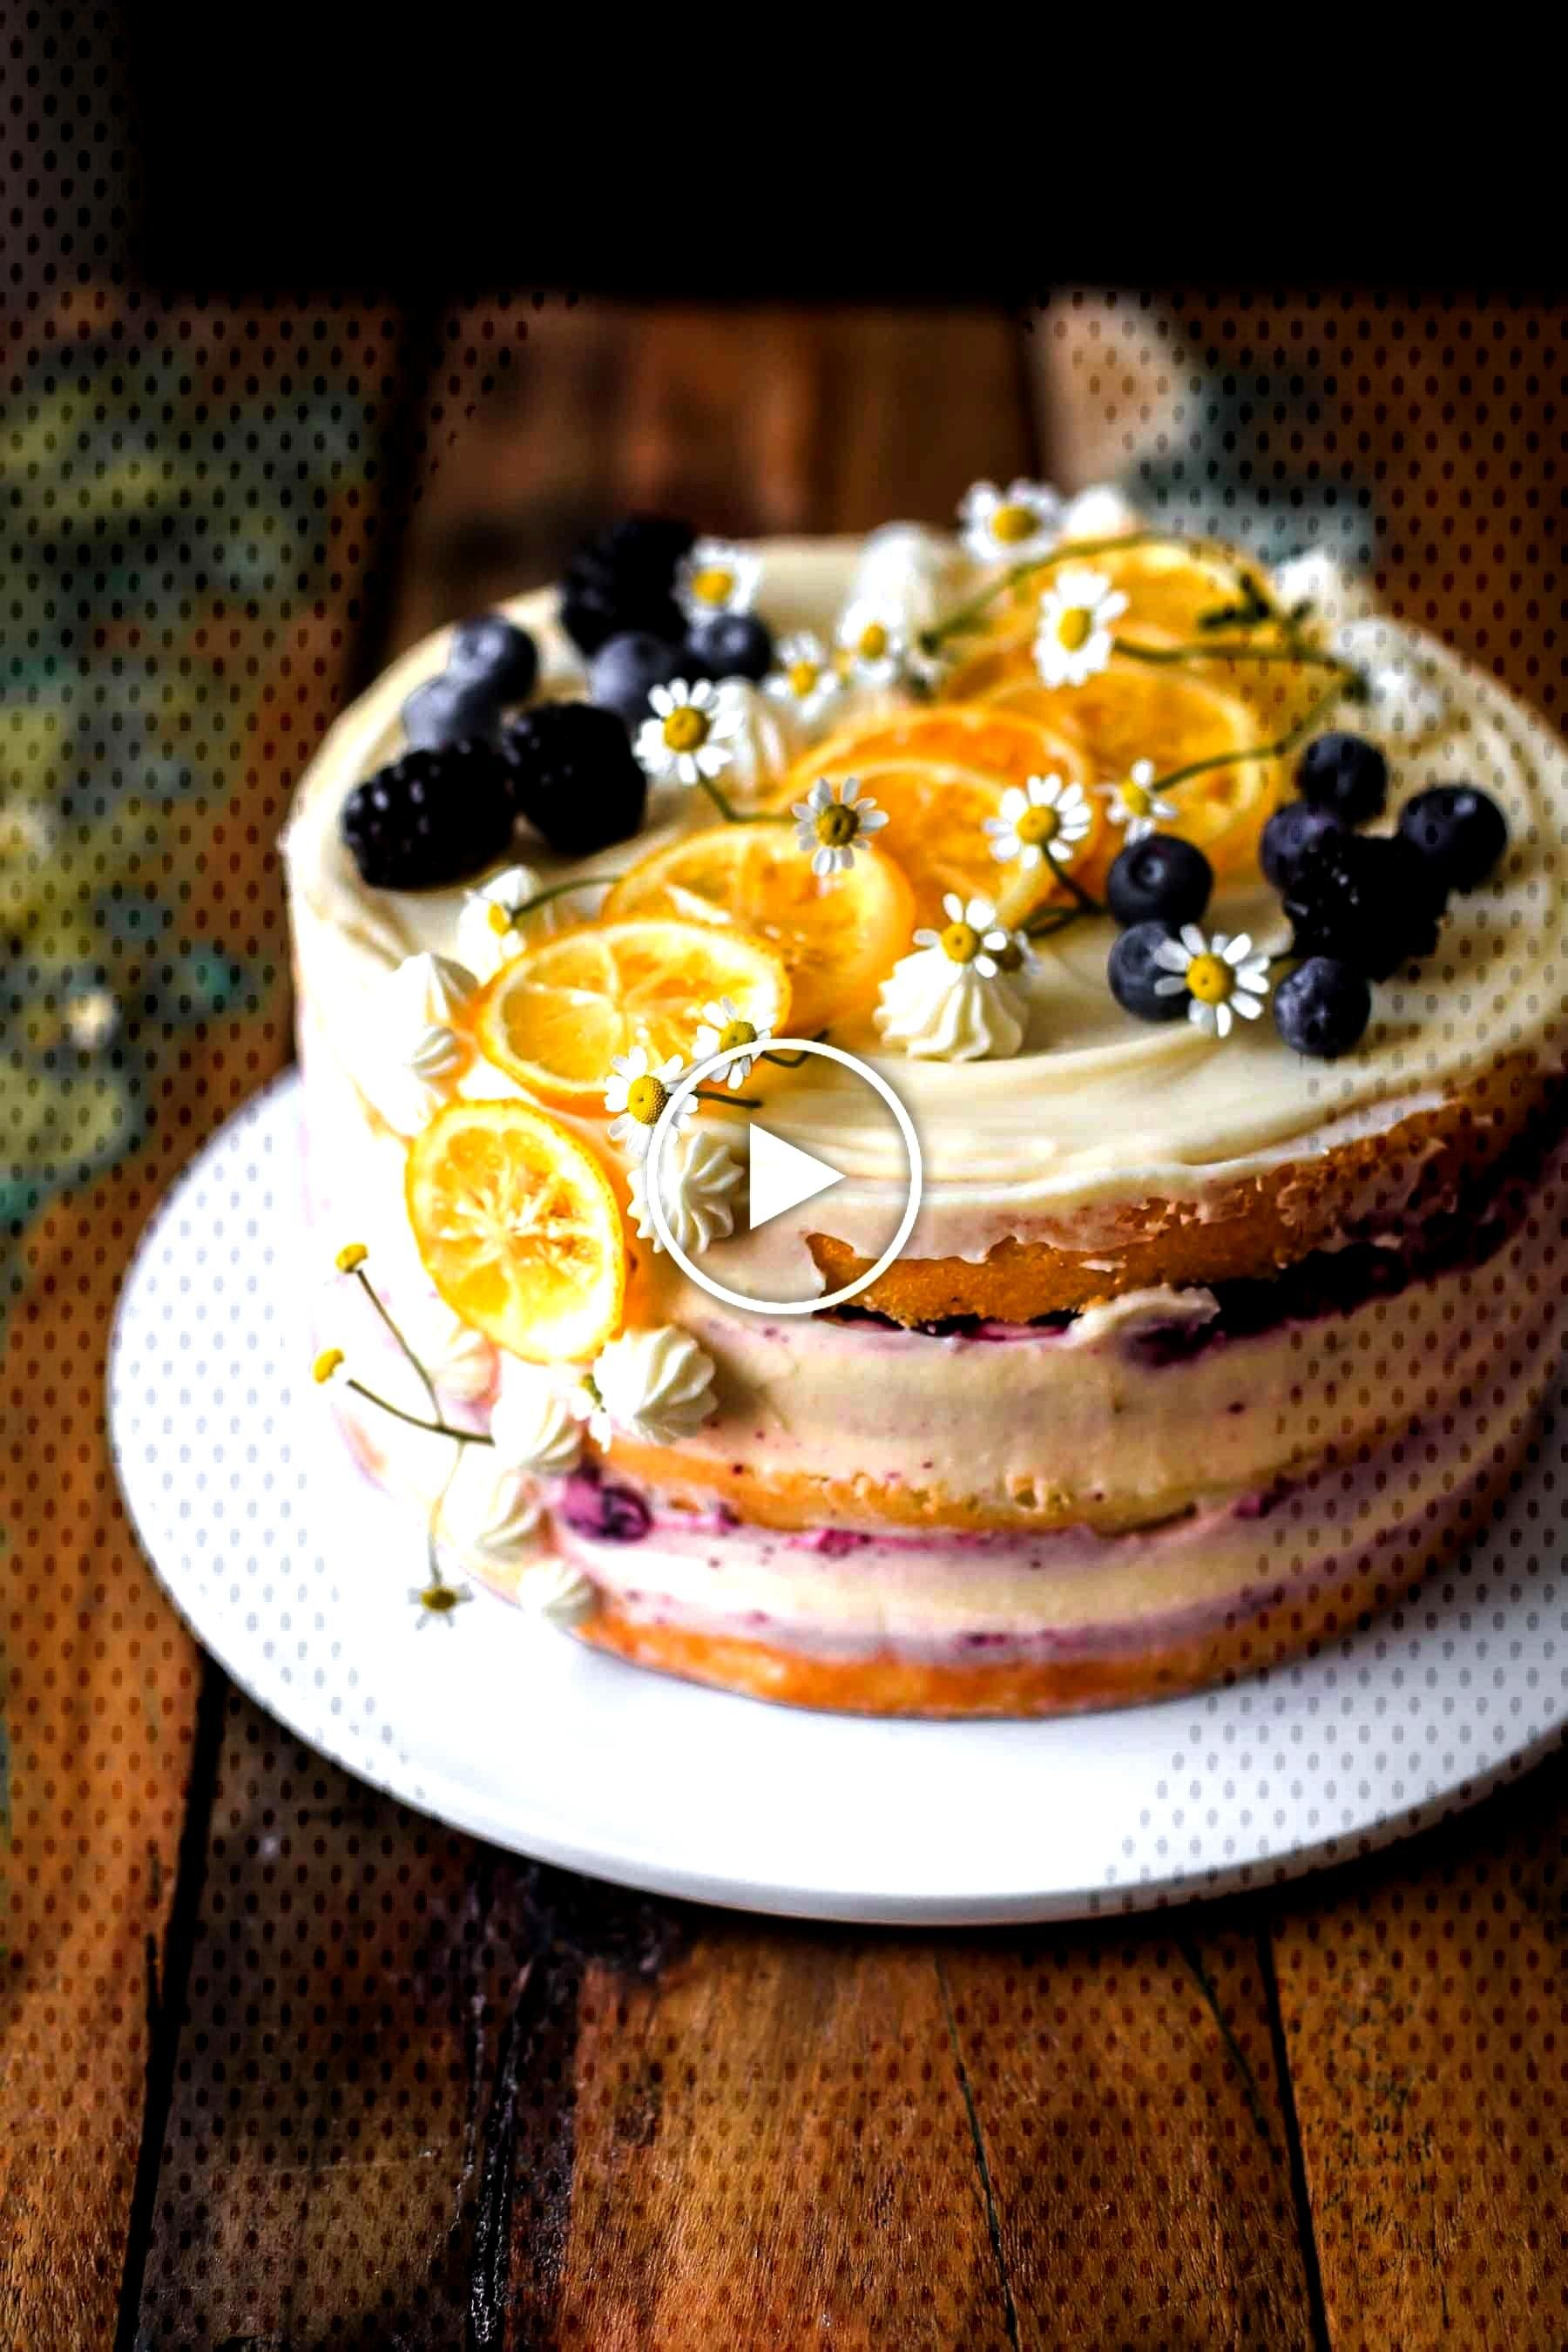 This super delicious Lemon Blueberry Cake is easy to make and comes with detailed step-by-step inst